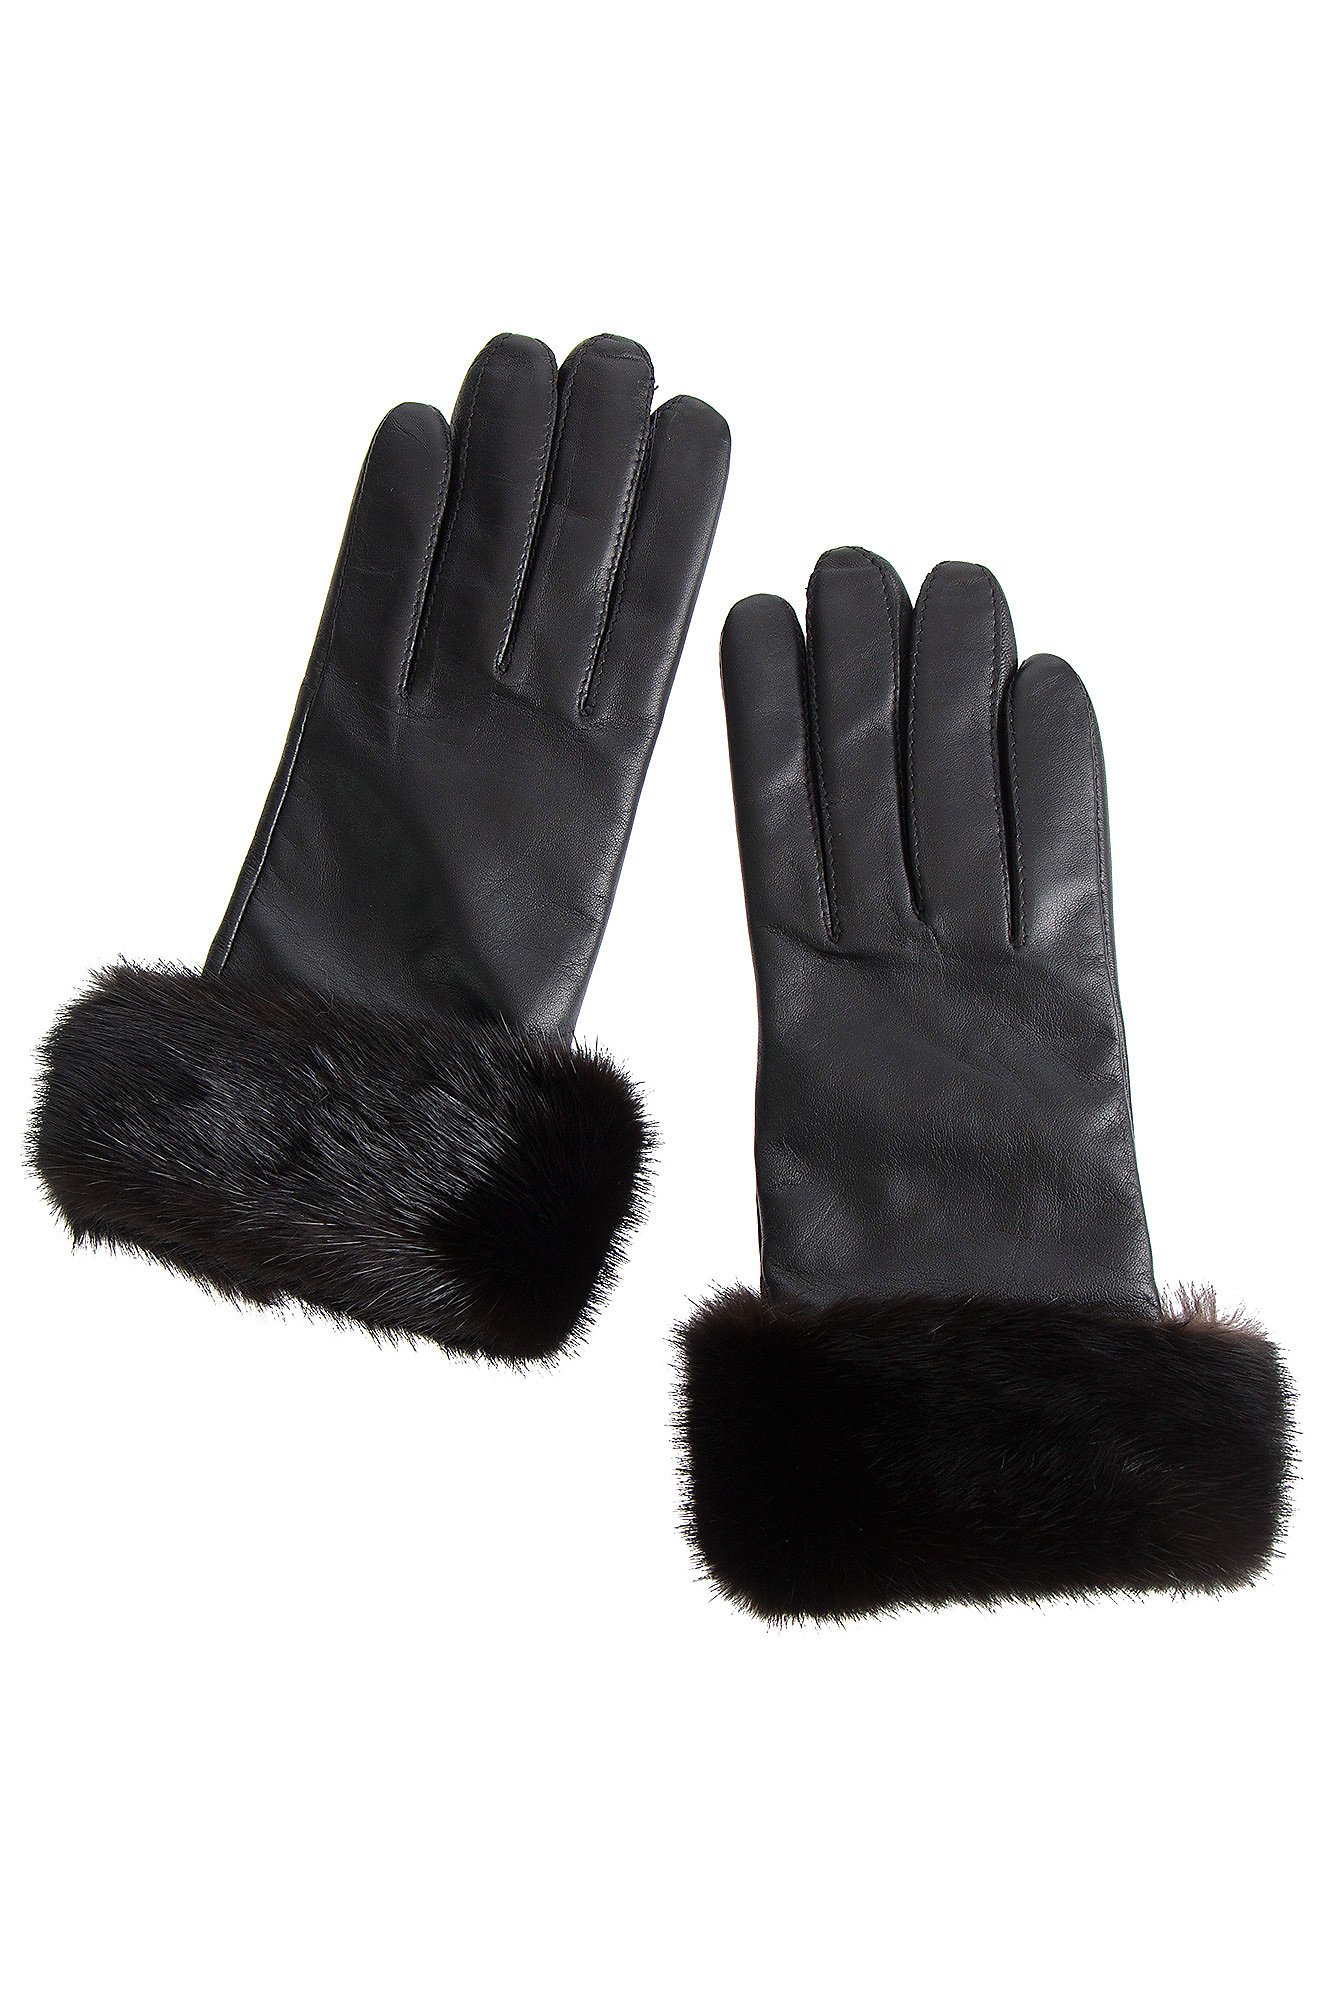 Women's Wool-Lined Lambskin Leather Gloves with Mink Fur Trim, BLACK/MAHOGANY, Size 7